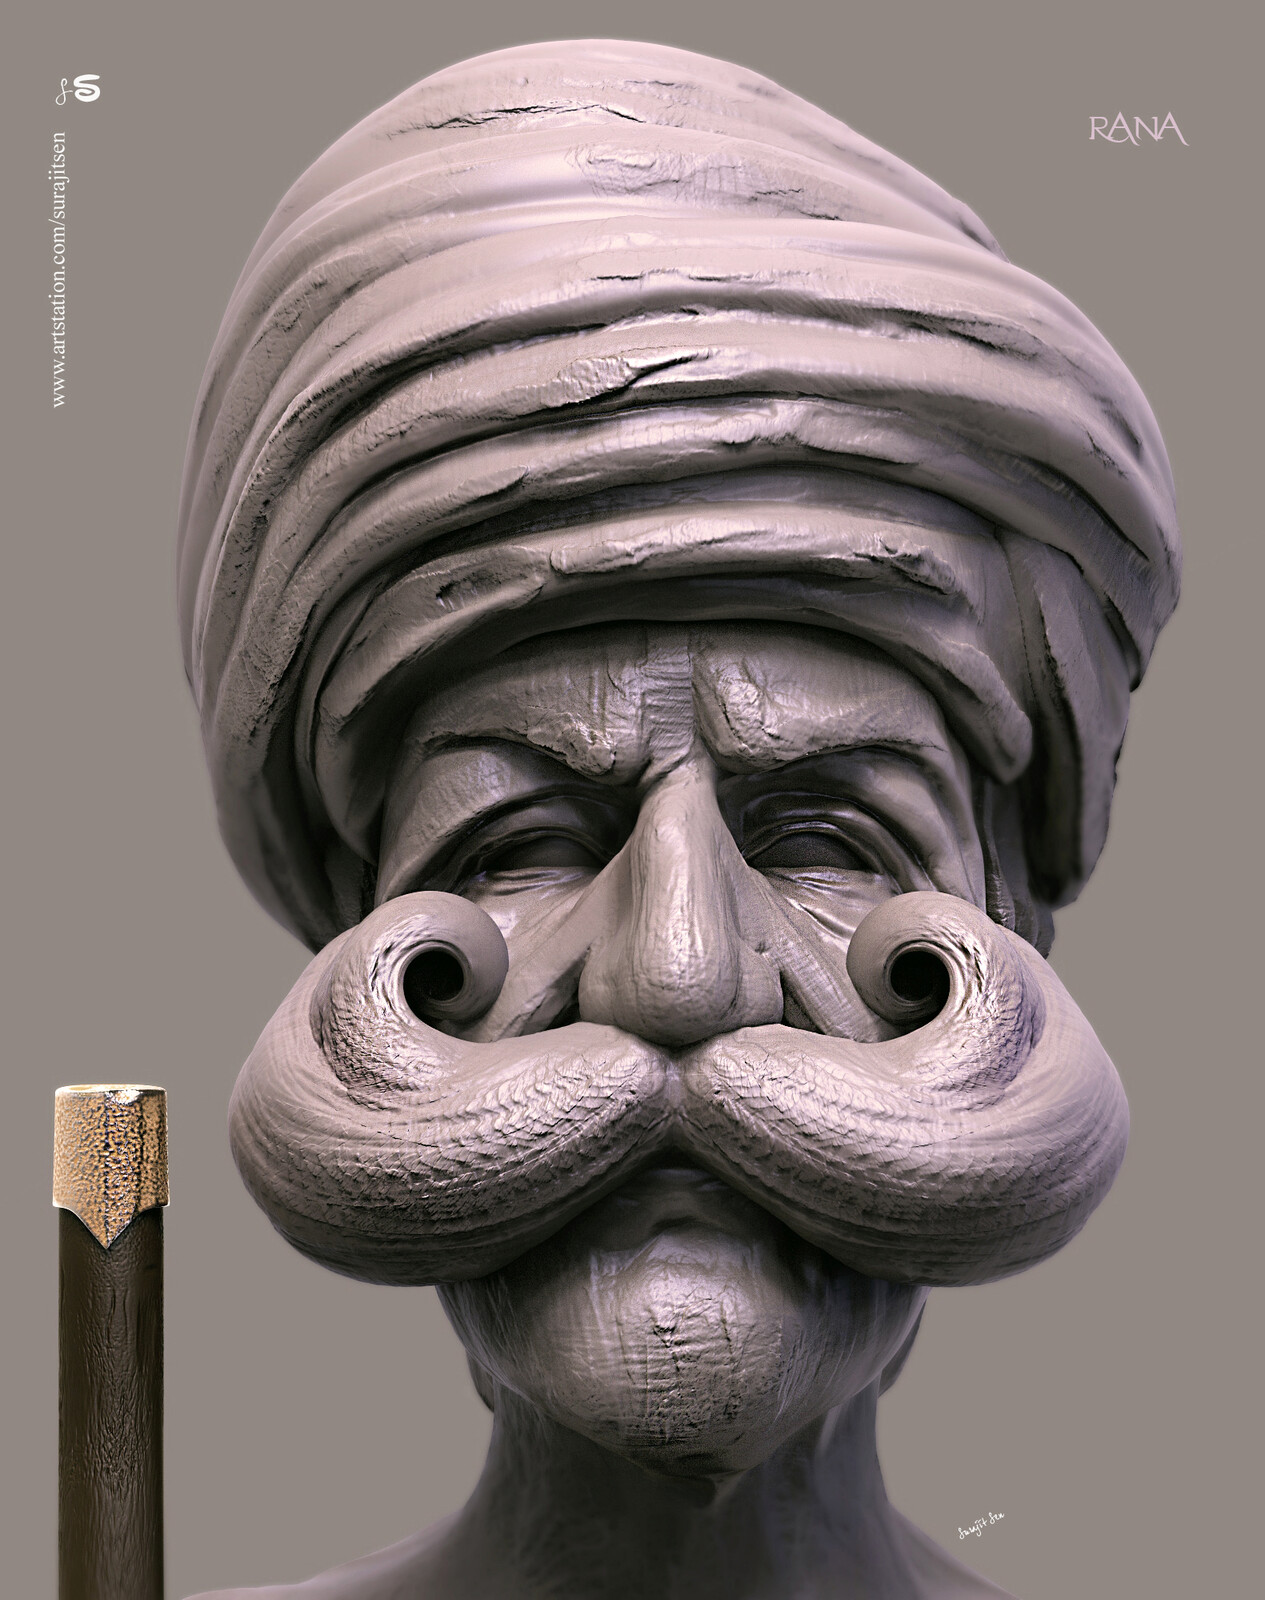 Rana.  Indian Man.  One of my free time speed Digital Sculpture. Played with brushes. Background music-#hanszimmermusic